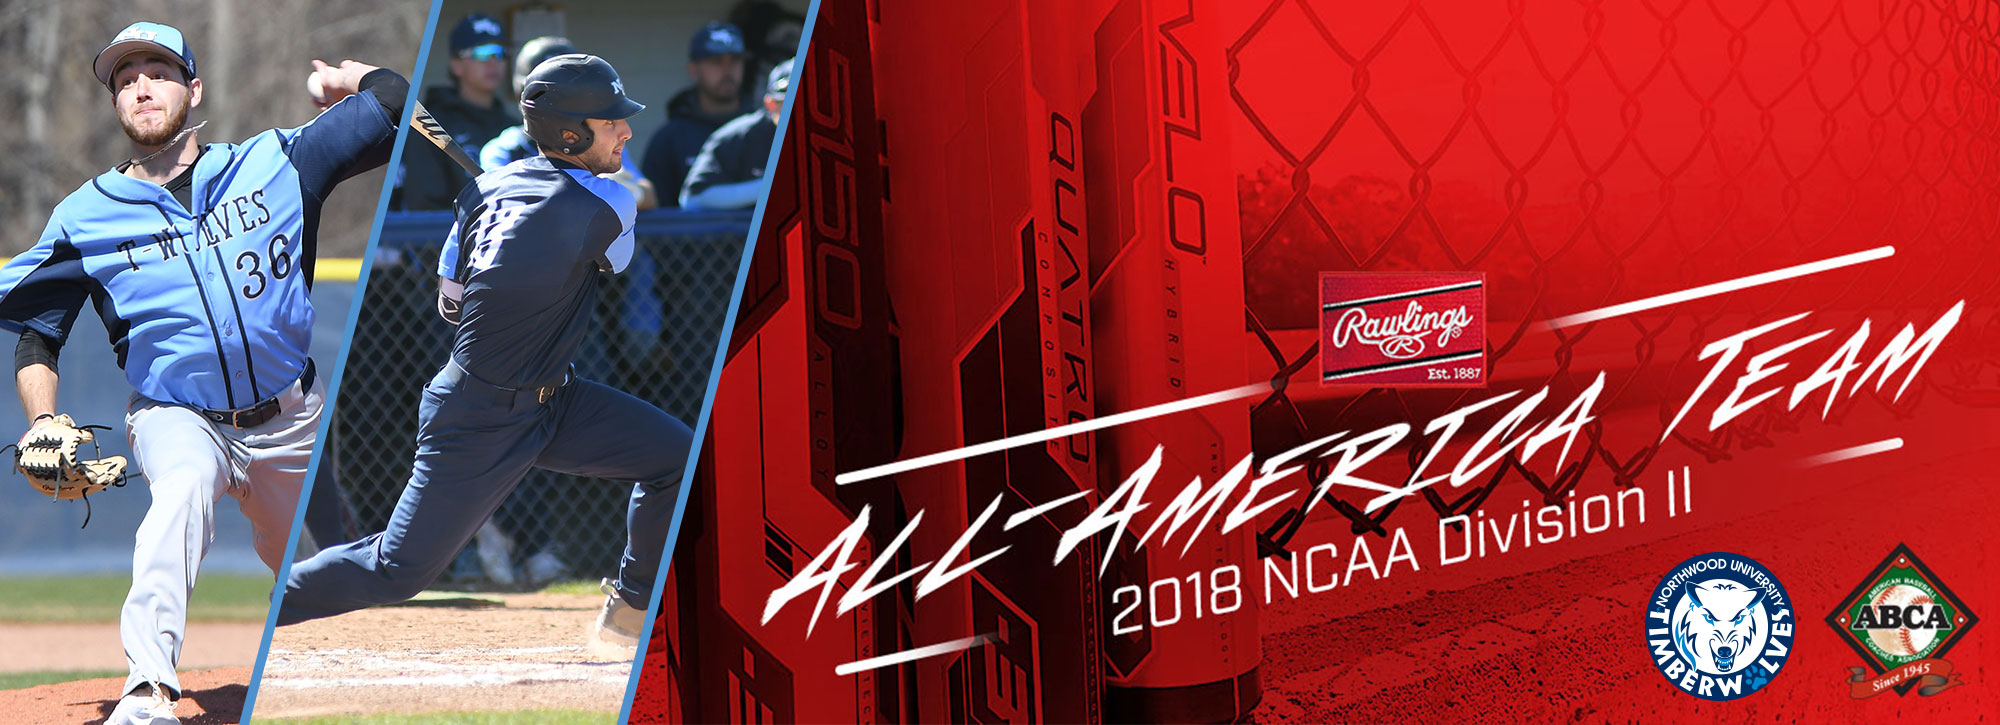 Northwood's Jandron, Vinsky Named ABCA/Rawlings Division II Baseball All-Americans